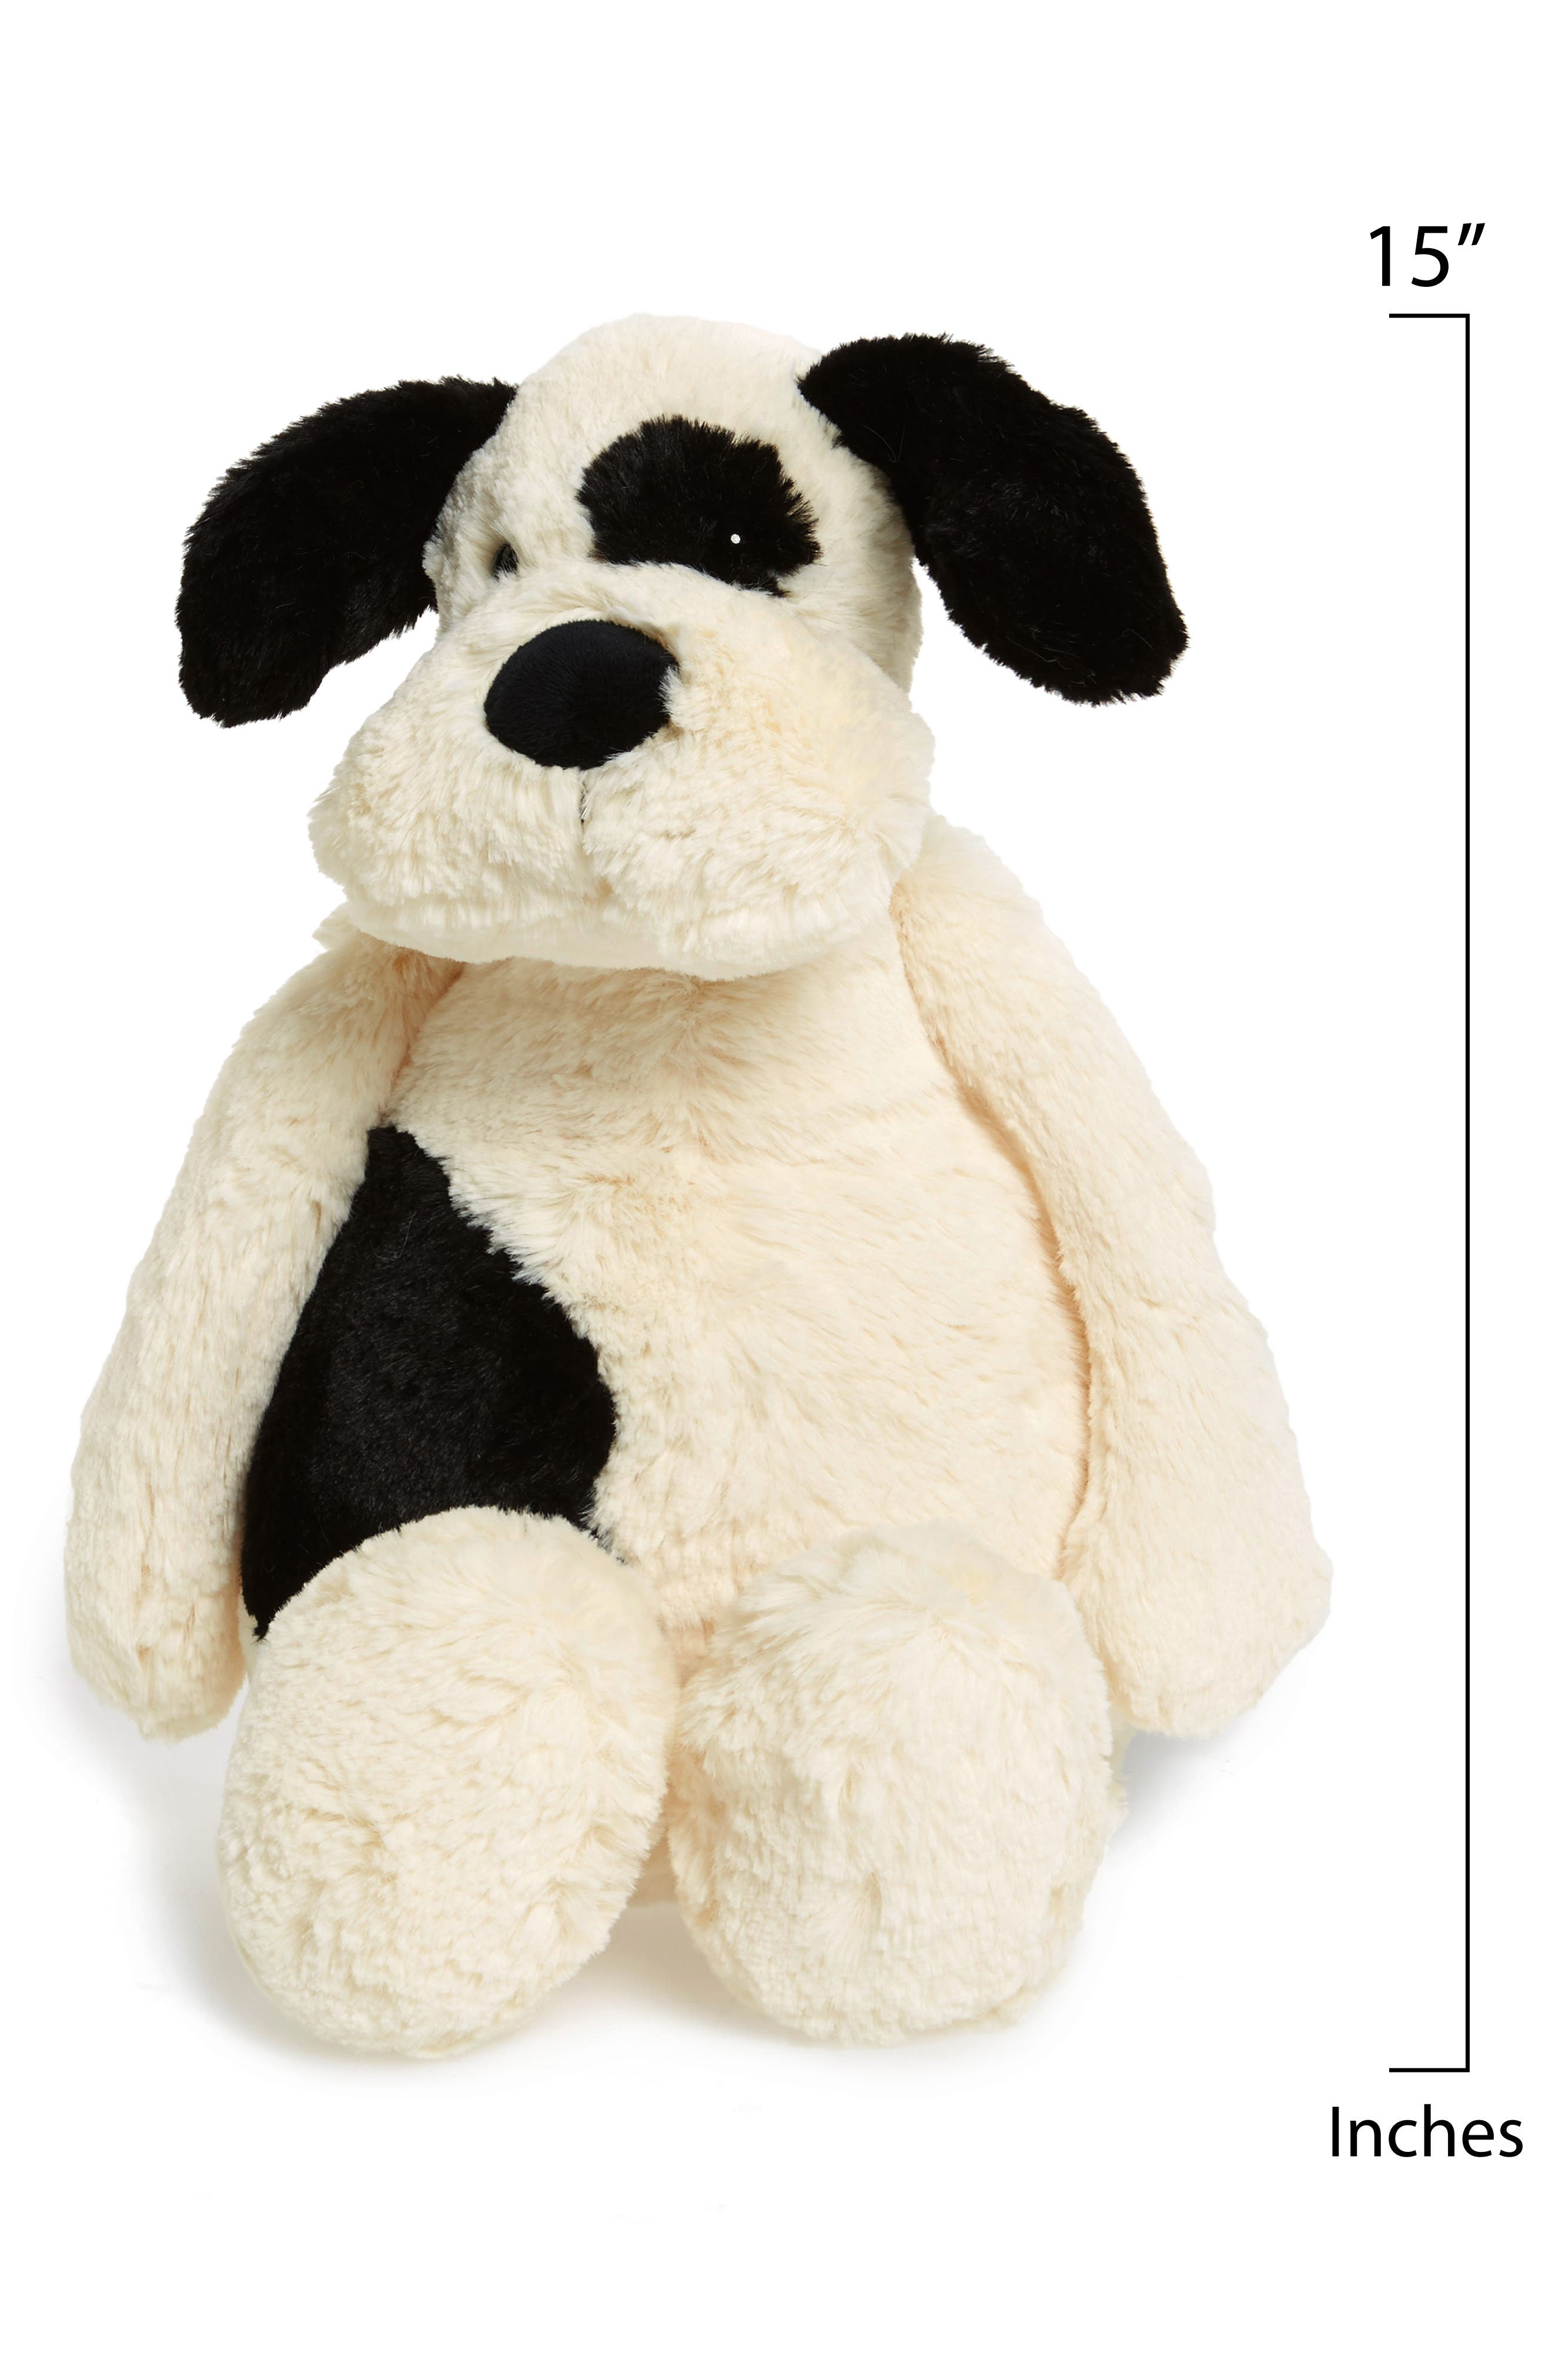 Alternate Image 2  - Jellycat 'Large Bashful Puppy' Stuffed Animal